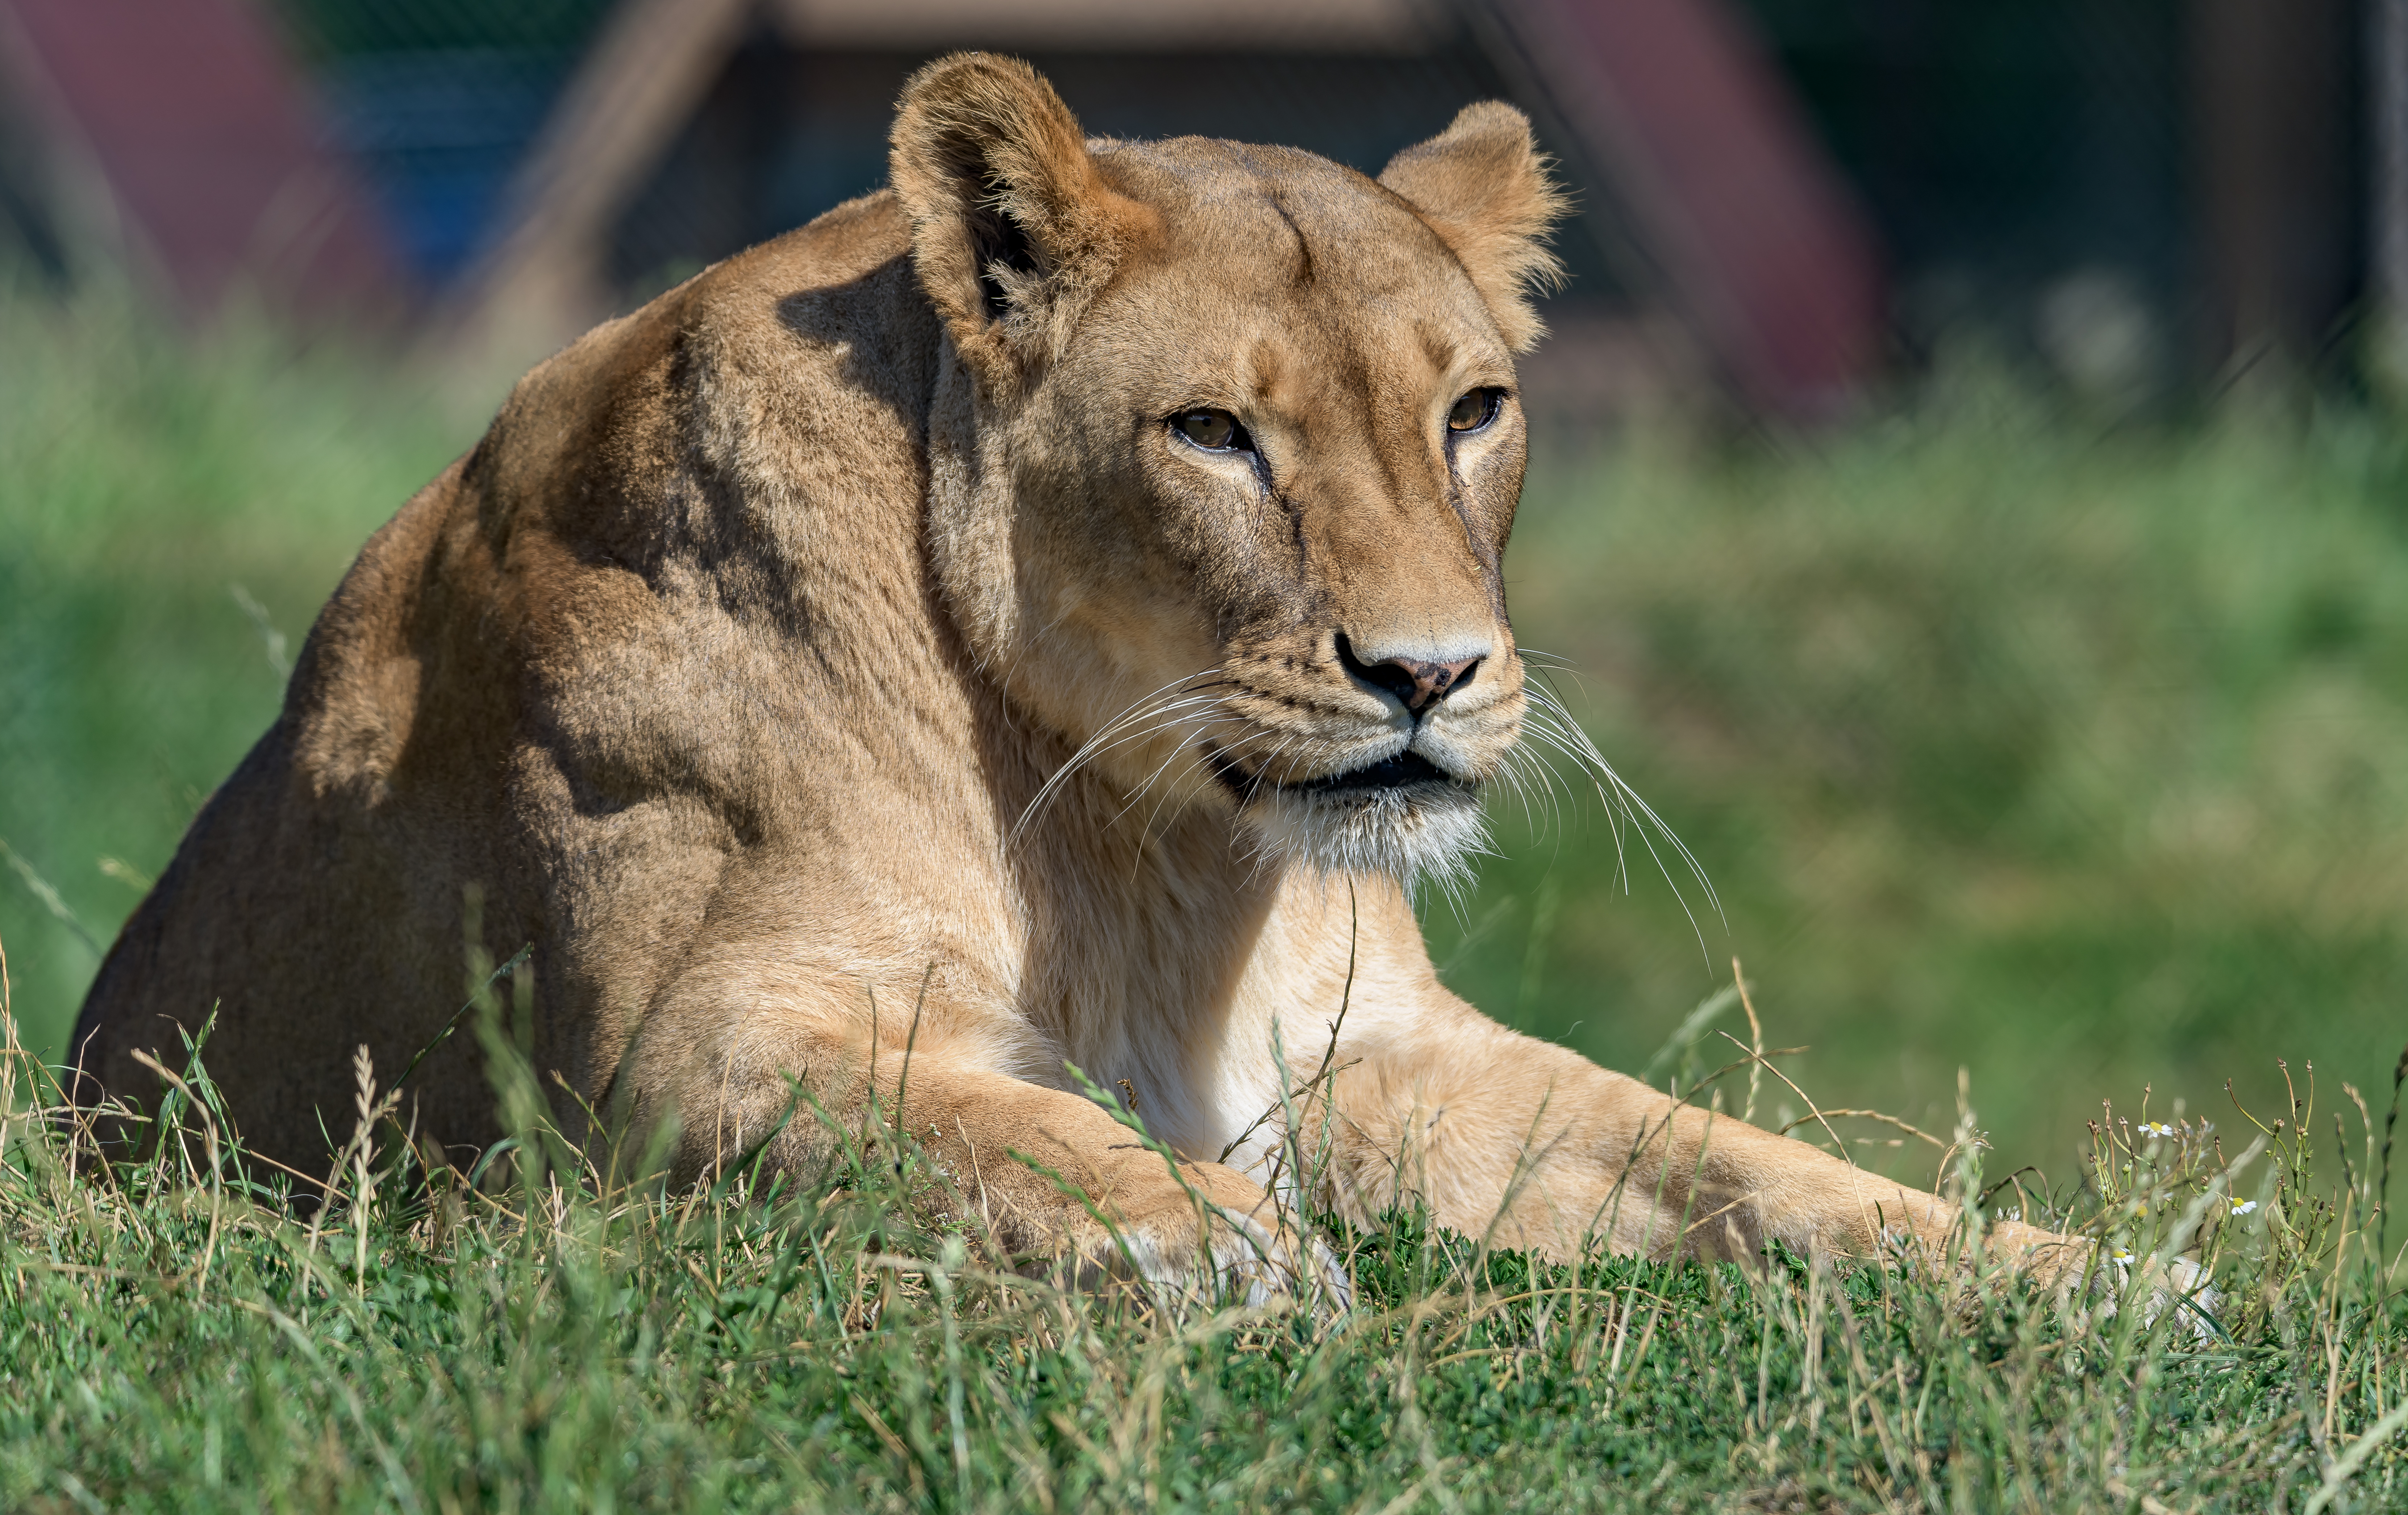 50504 download wallpaper Animals, Lioness, Big Cat, Sight, Opinion, Predator, Wildlife screensavers and pictures for free